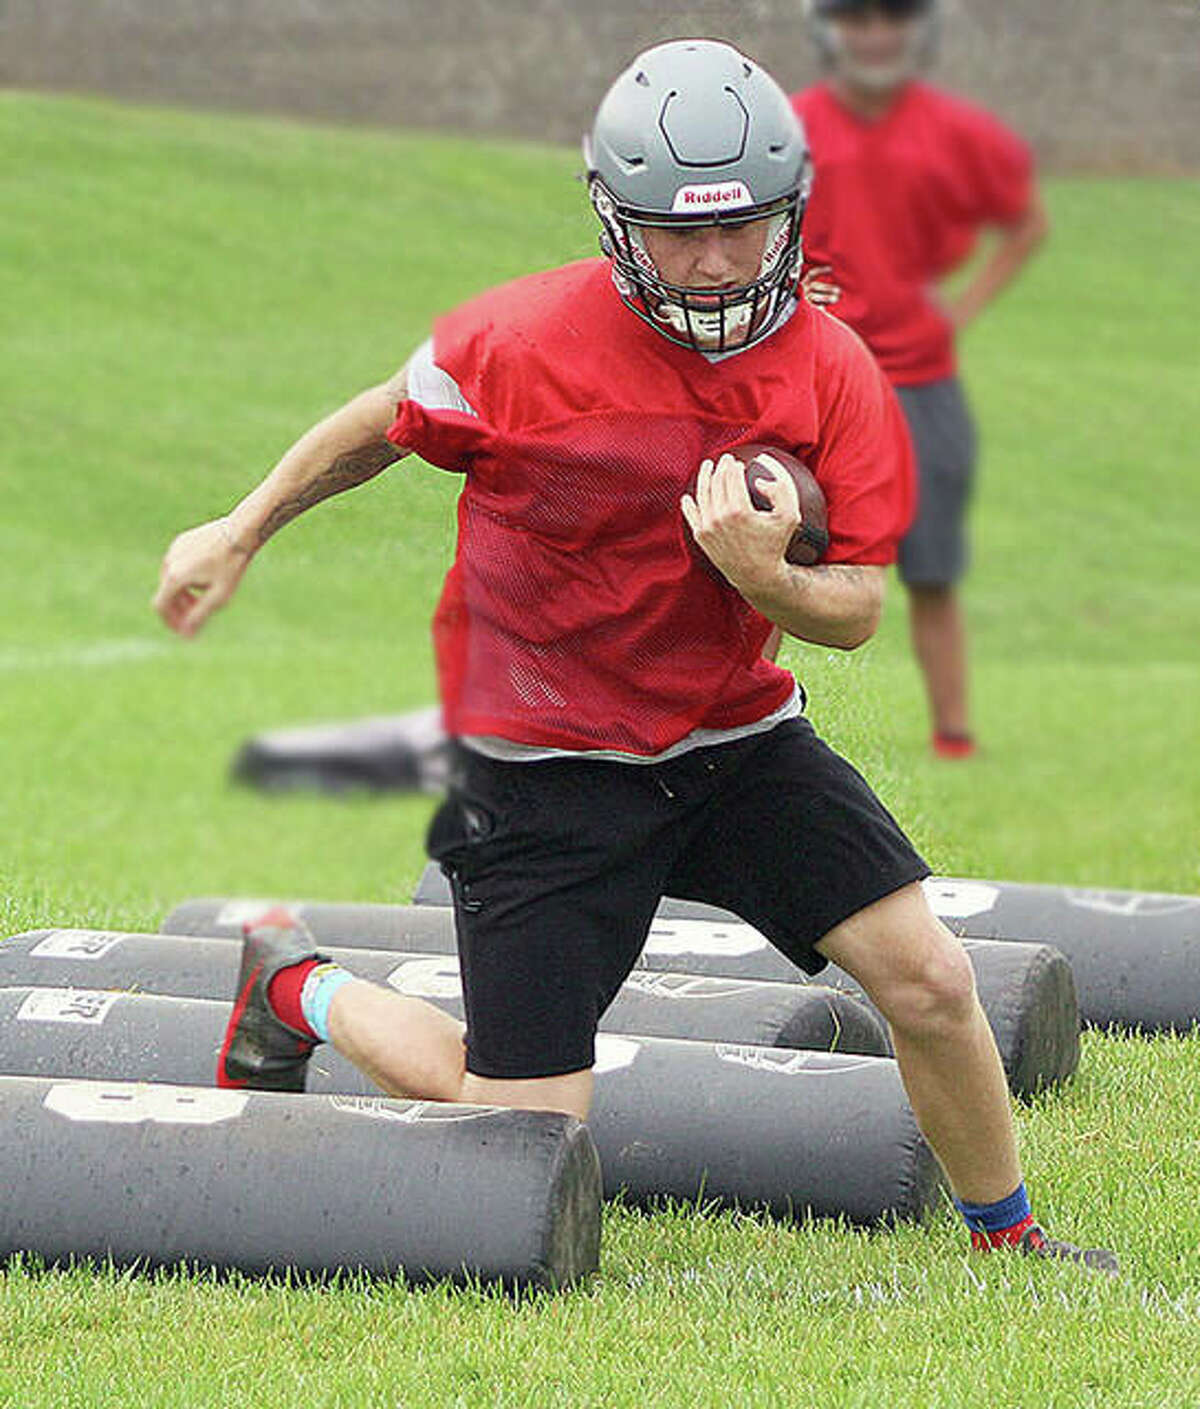 Alton's Gage DePew, shown here during a practice session, scored a touchdown in Saturday's loss to Quincy. He later left the game with an injury after making a hard tackle on defense.